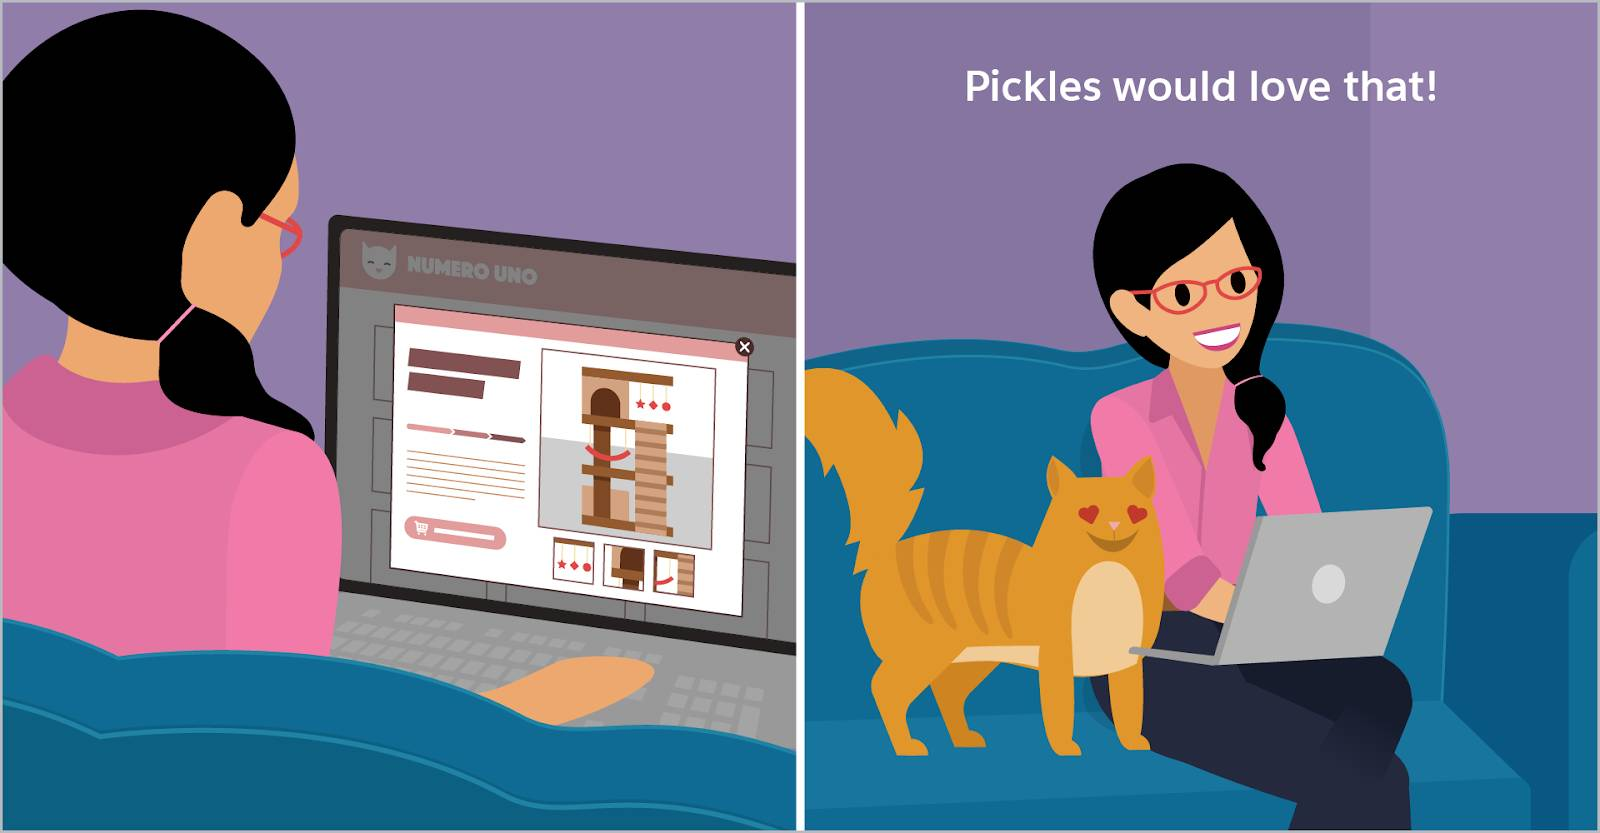 """On the left, Sarah sits on her sofa and sees an ad for a cat tower on her laptop. On the right, Pickles the cat is standing next to Sarah on the sofa with hearts as her eyes. Sarah says, """"Pickles would love that!"""""""